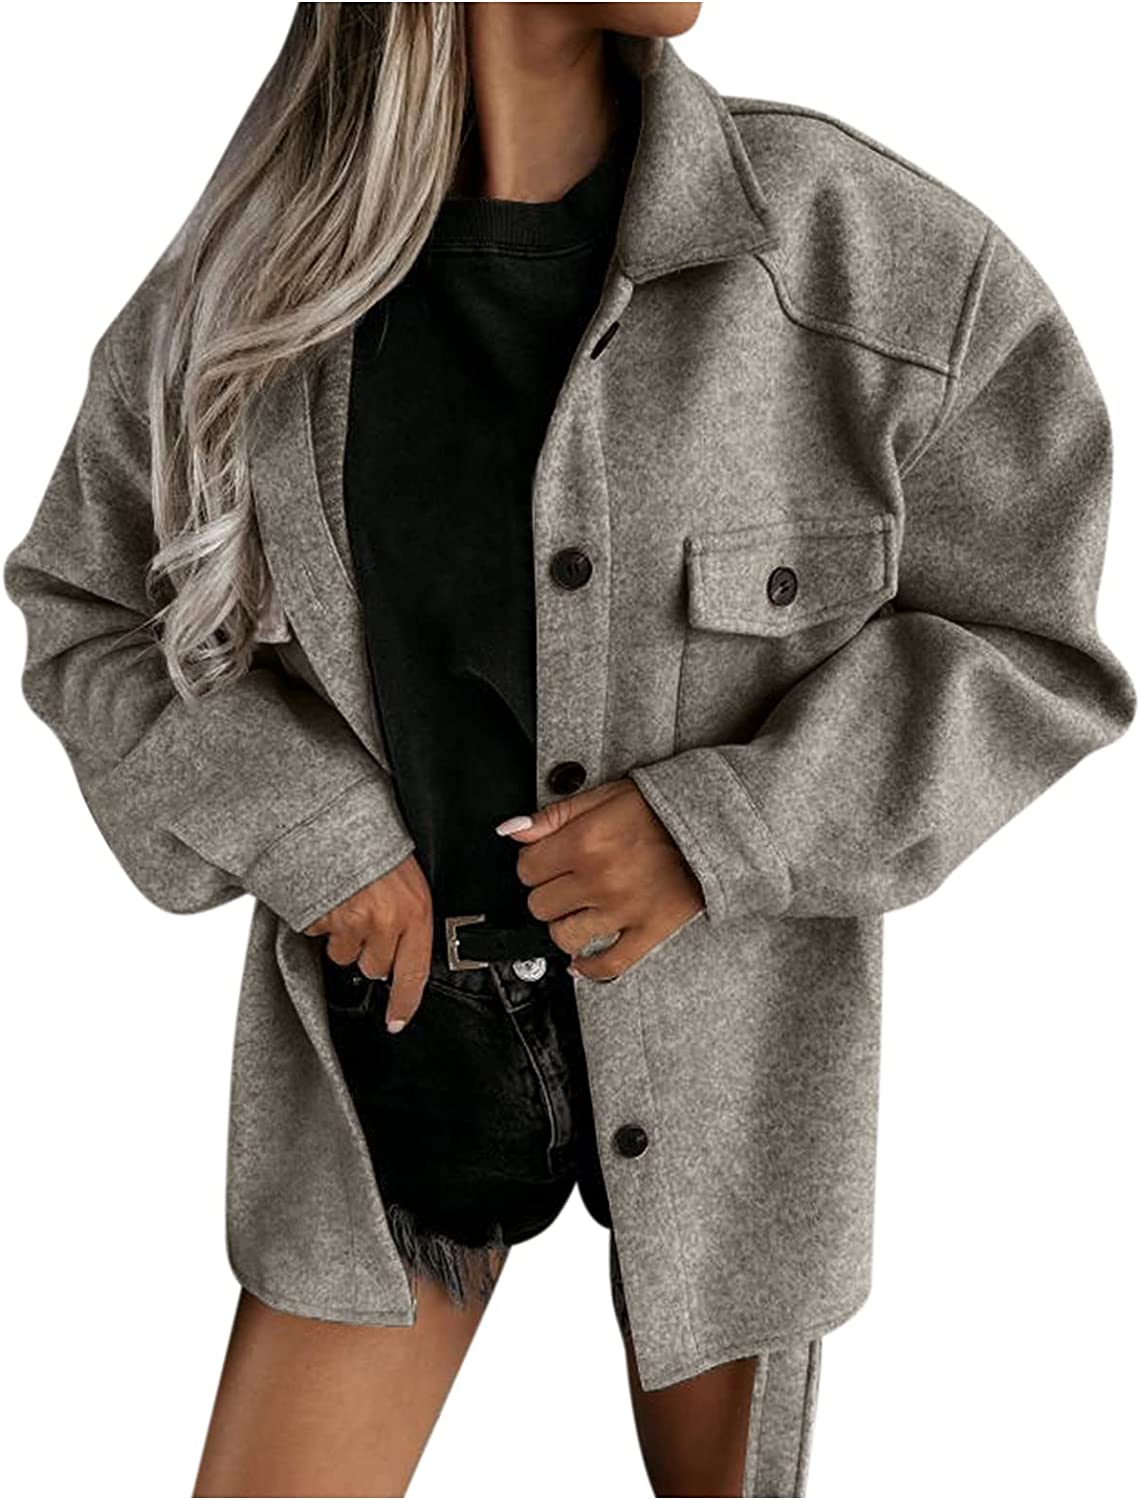 X2People Womens Woolen Cloth Coat Comfy Lapel Button Blouse Casual Loose Long Sleeve Jacket Open Front Outwear with Belt